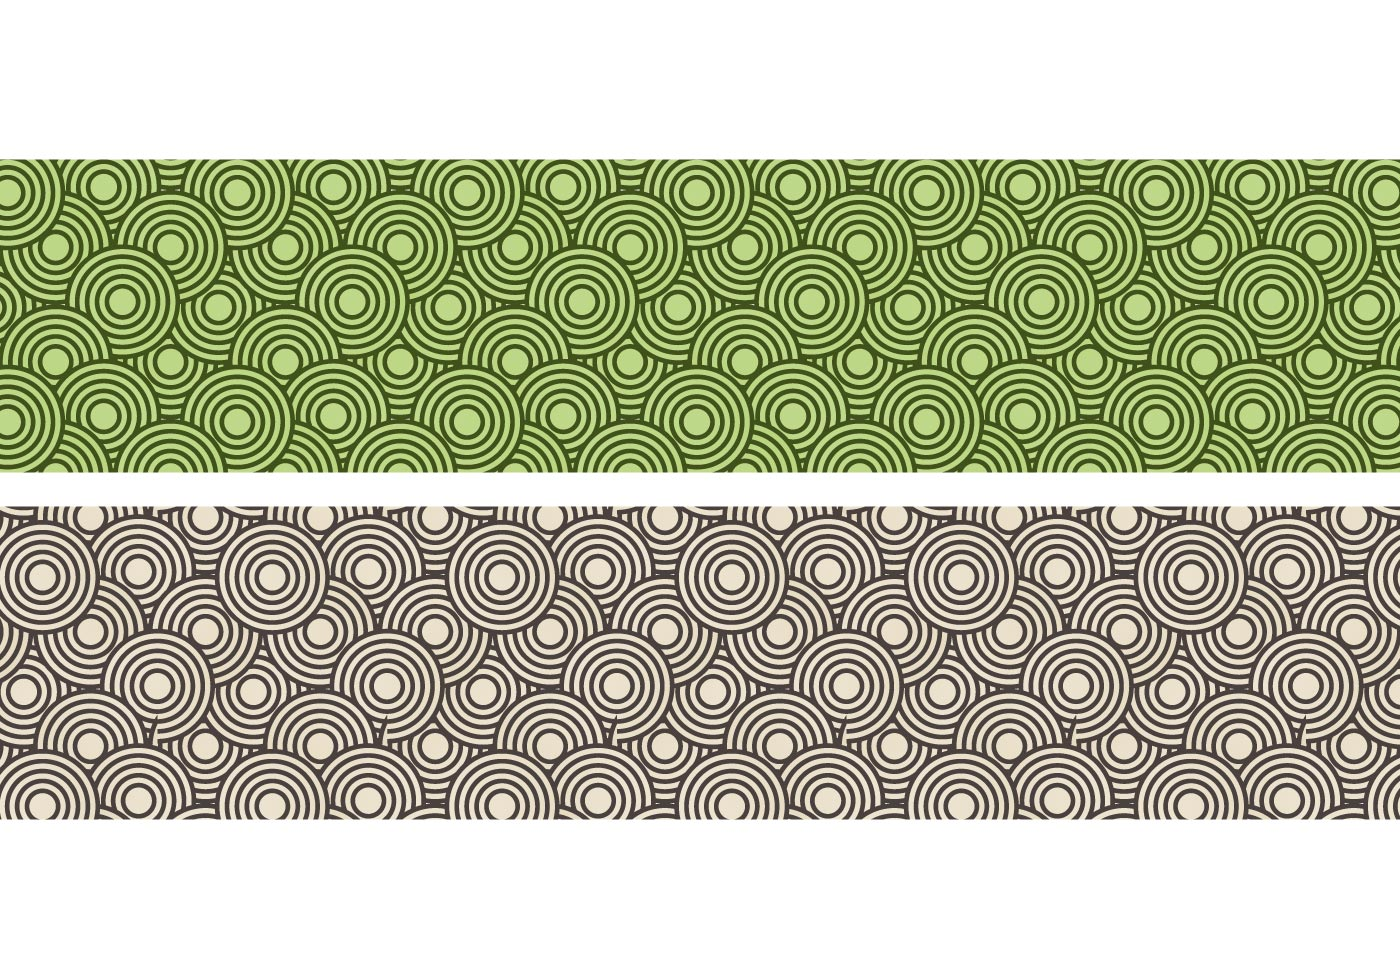 Crazy Circles Free Seamless Pattern Download Free Vector